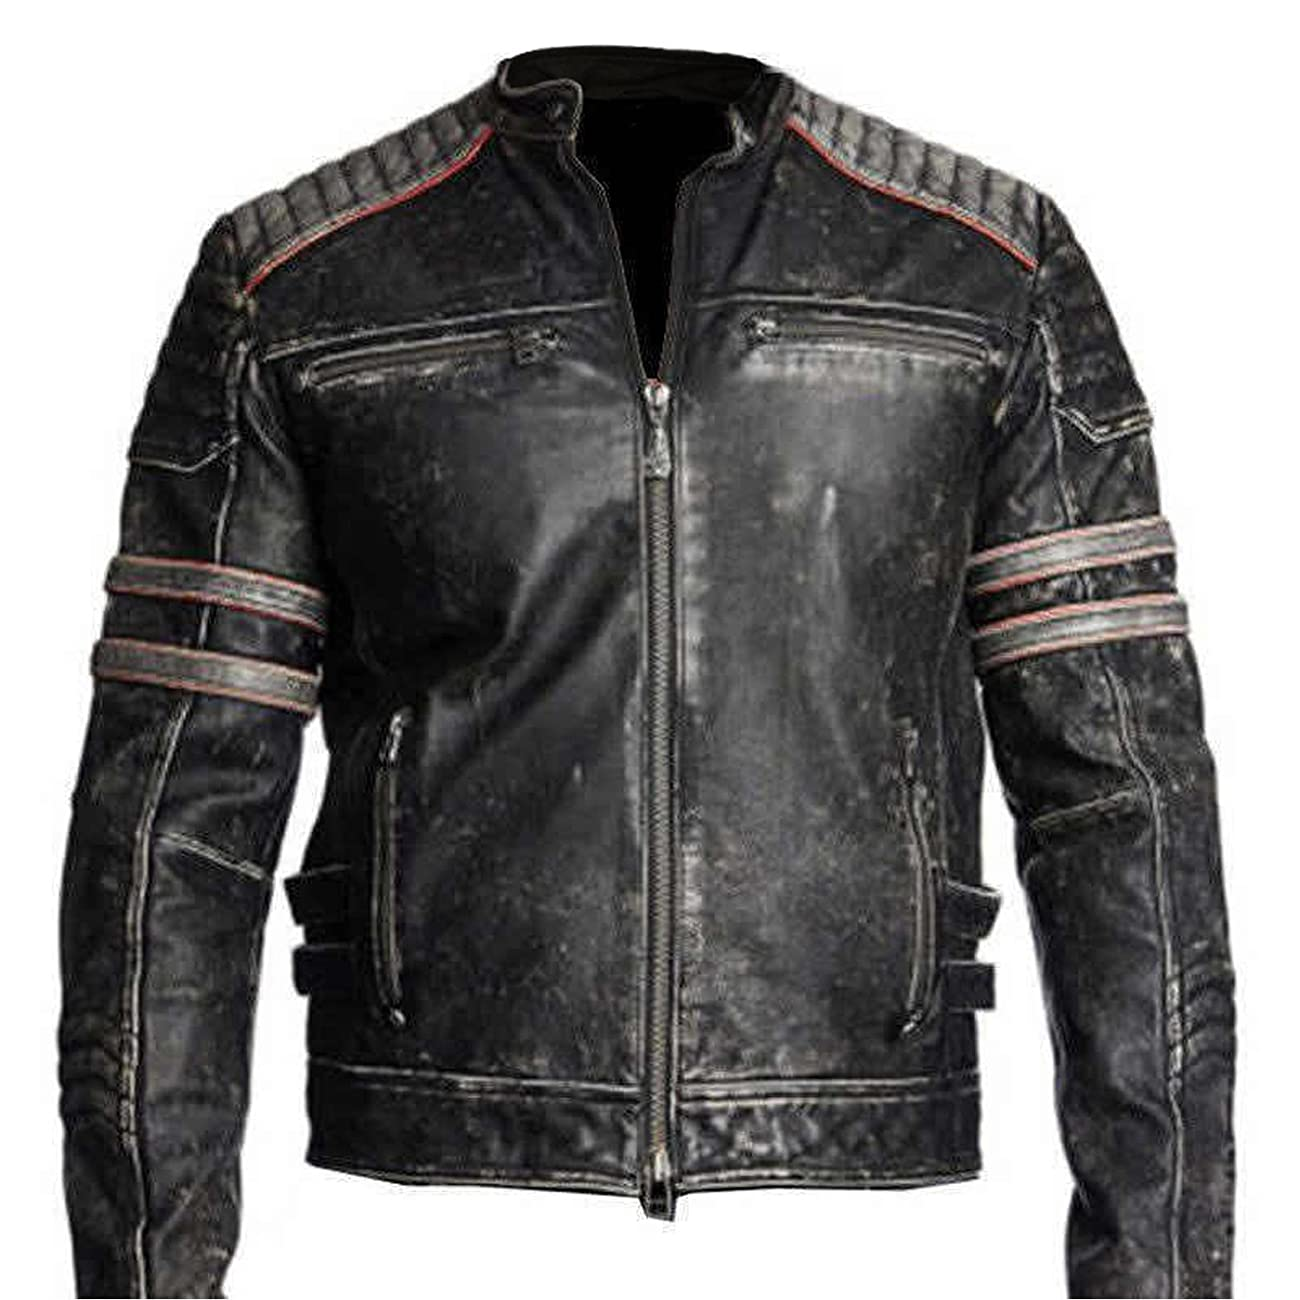 Men's Biker Vintage Motorcycle Distressed Black Retro Leather Jacket 0